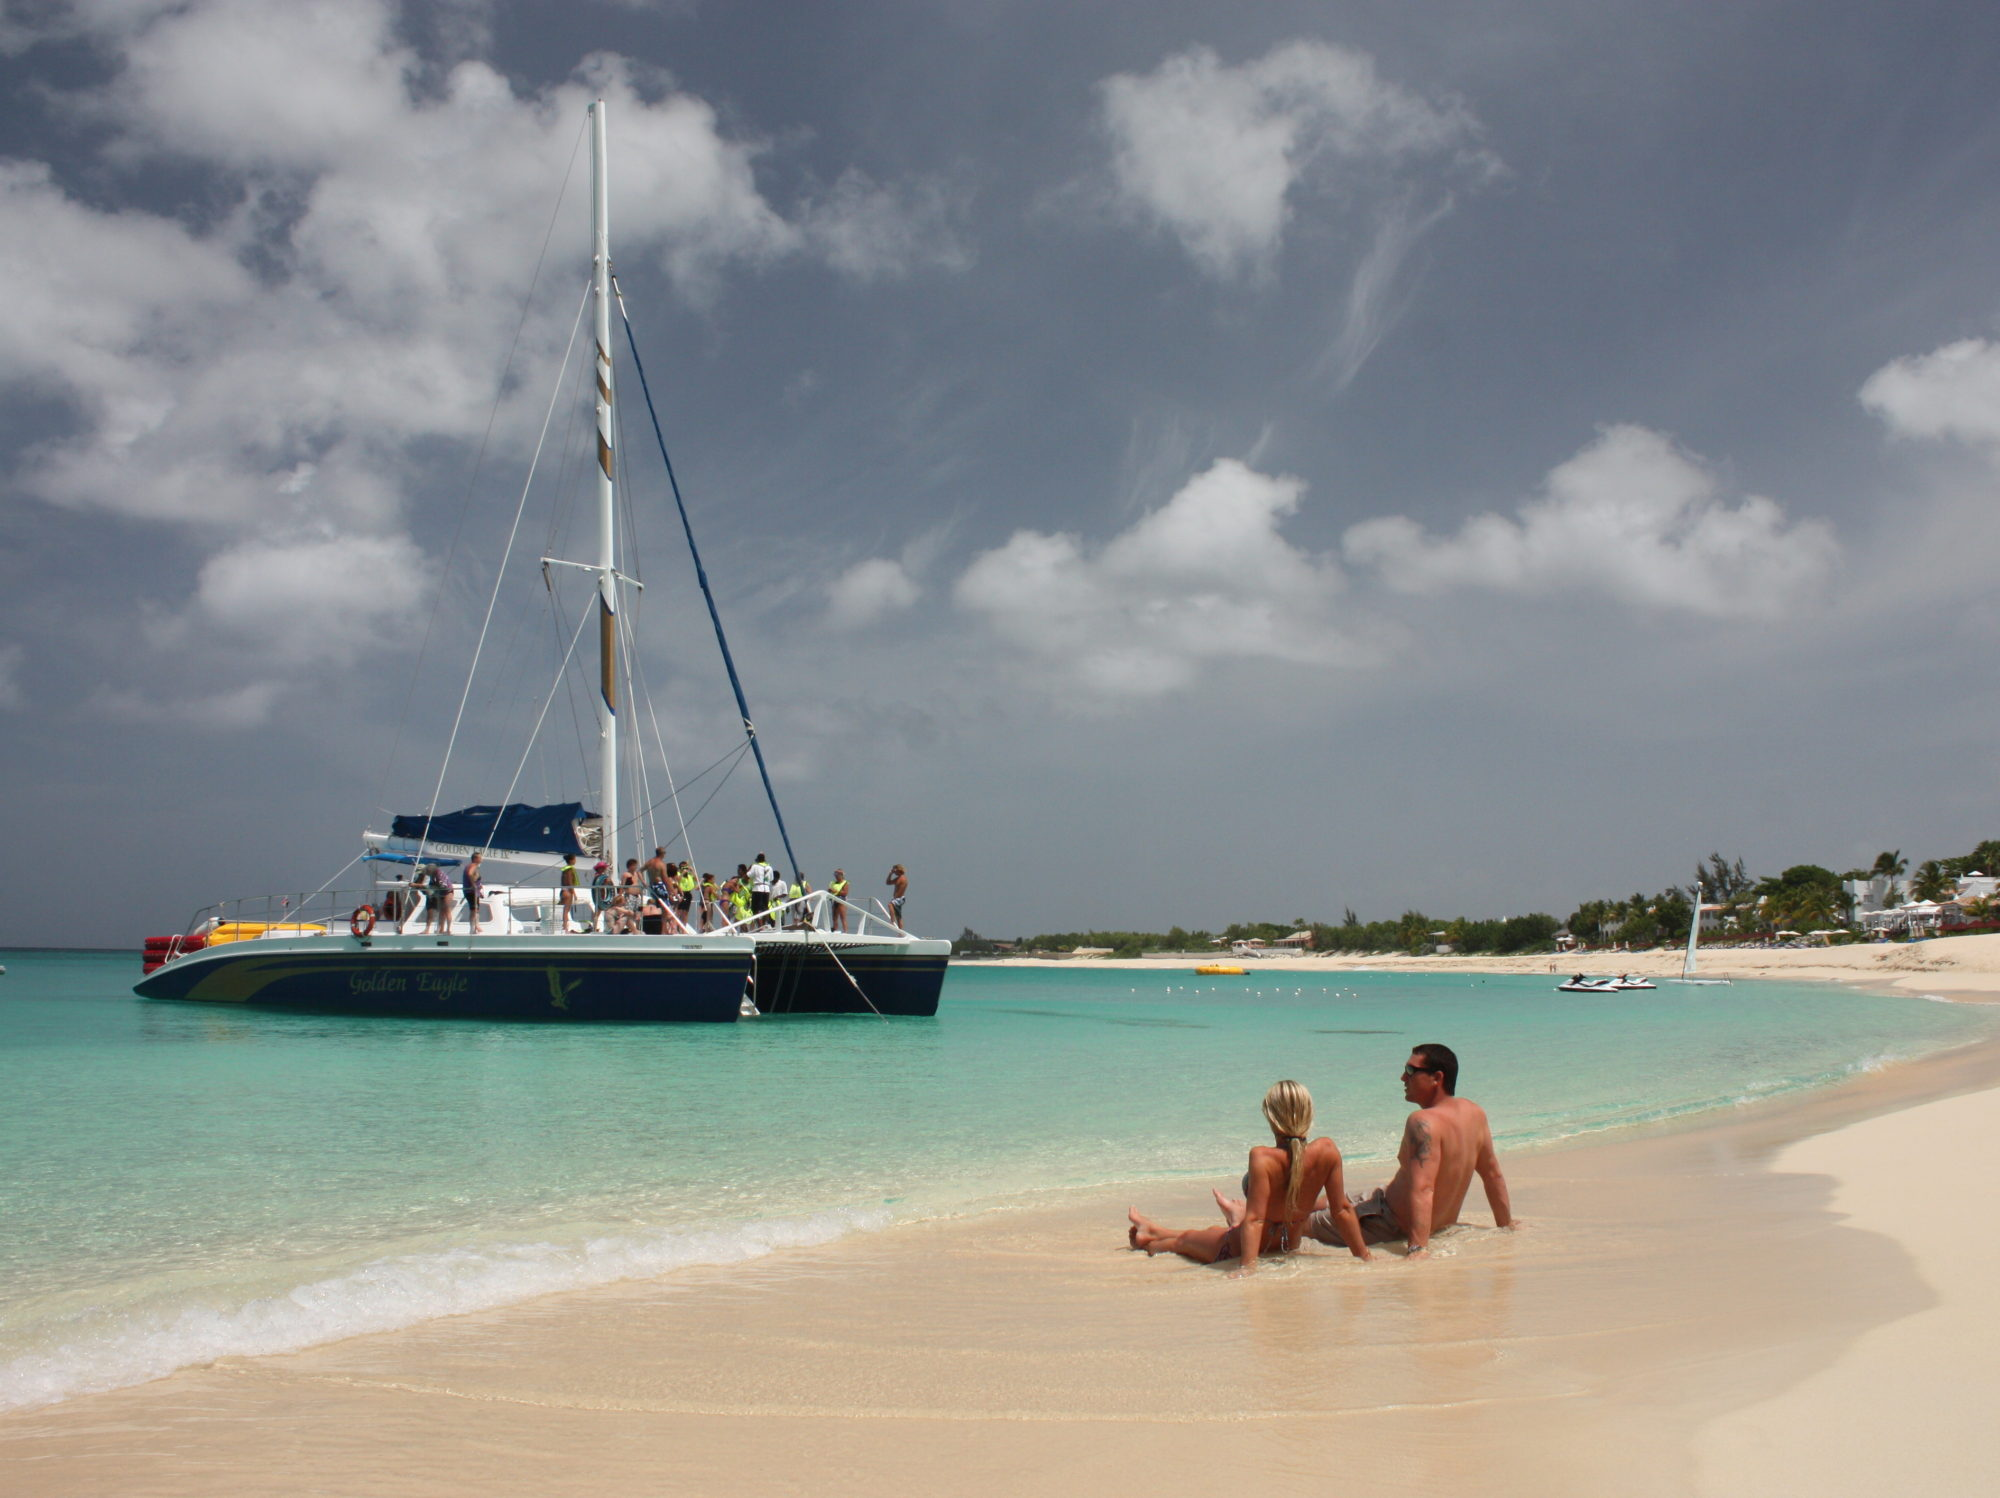 Out Island Charters: The Best day tours and cruise ship excursions on St. Maarten